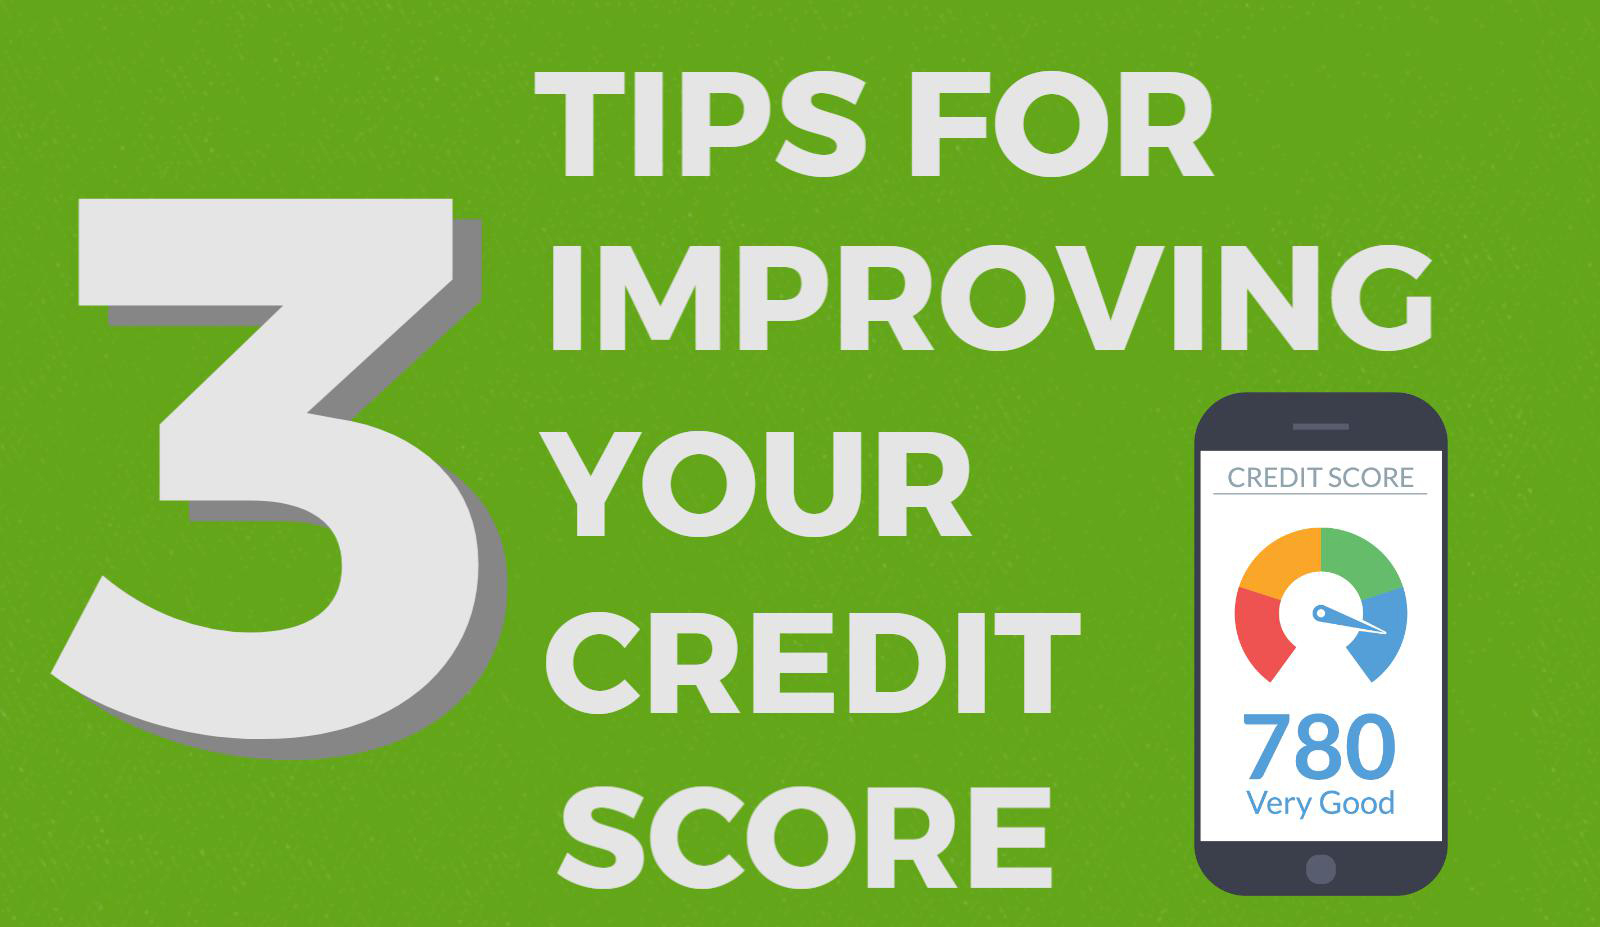 Updated 3 Tips for improving your credit header for BNTouch